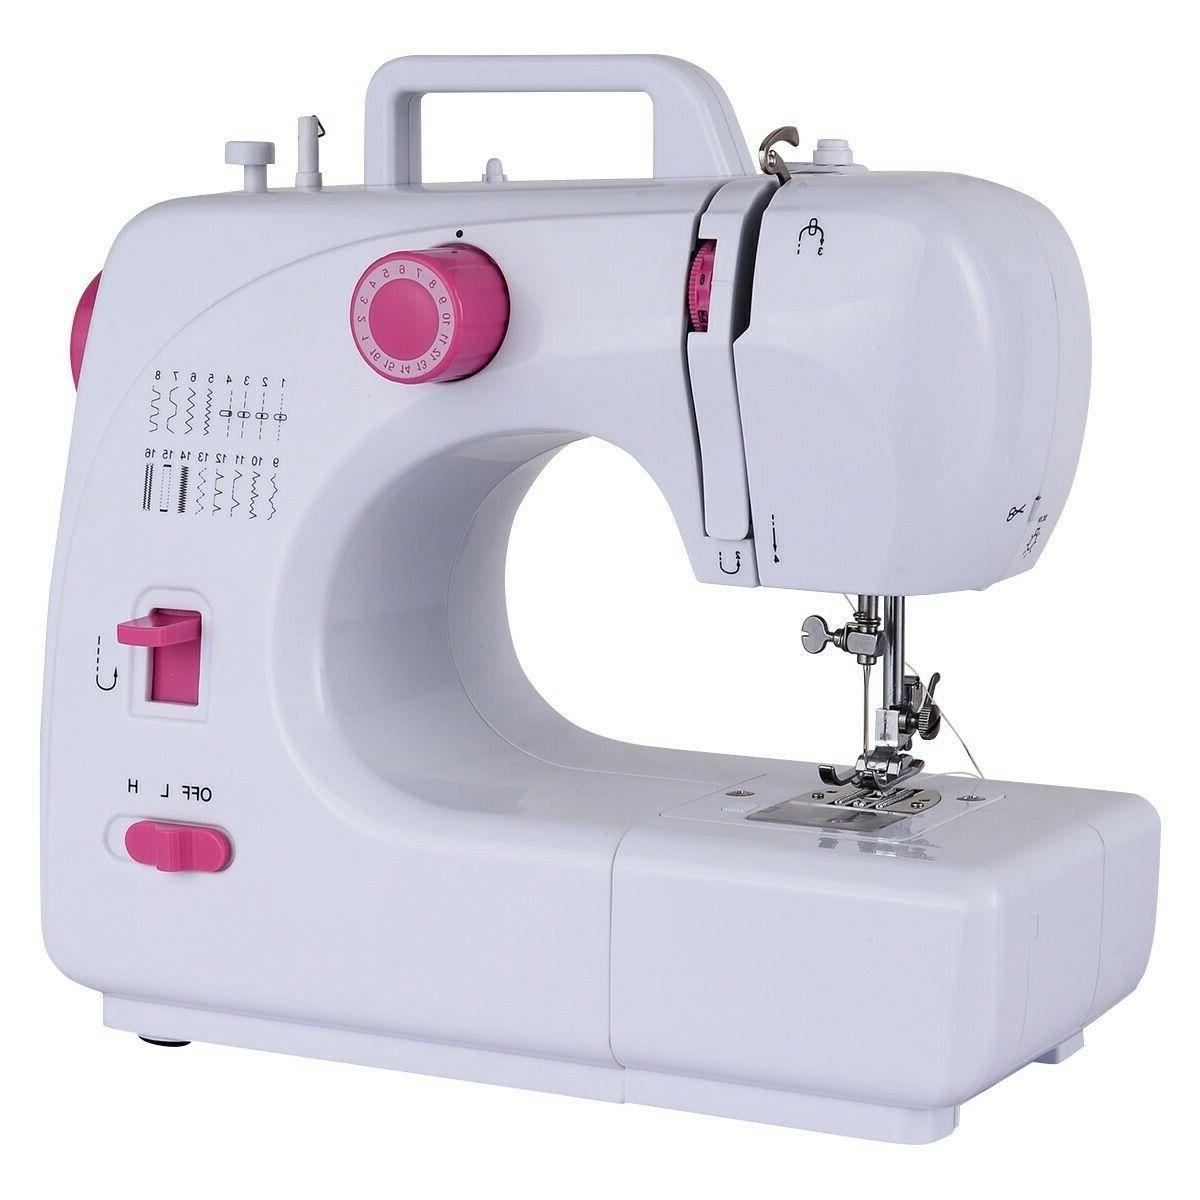 Free-Arm Crafting Sewing Machine with 16 Built-in Stitches